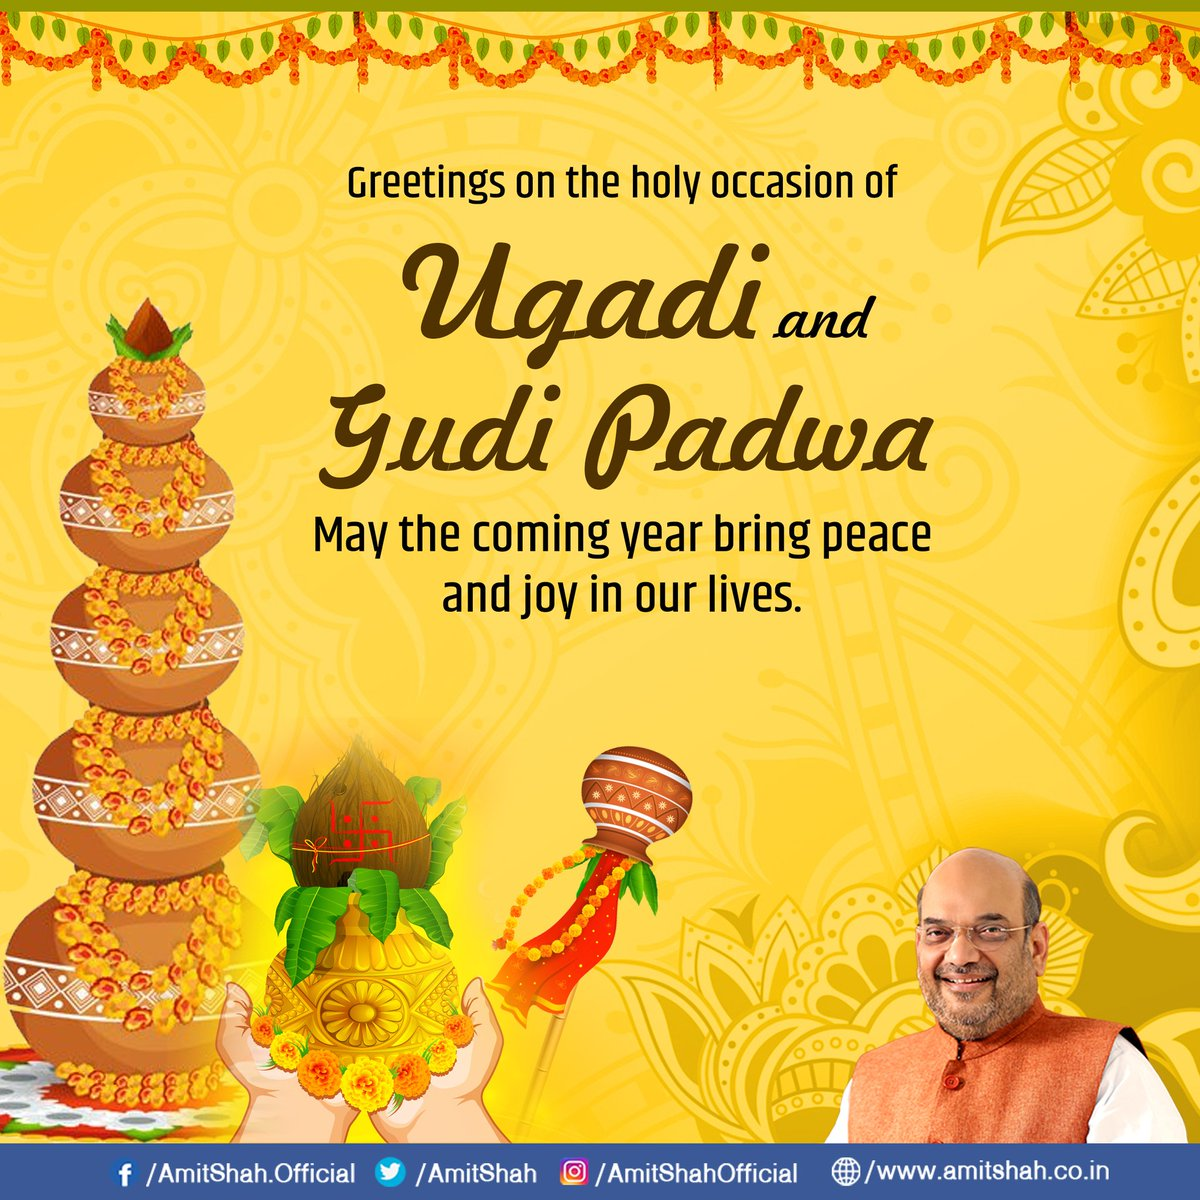 Amit Shah On Twitter Greetings On The Holy Occasion Of Ugadi And